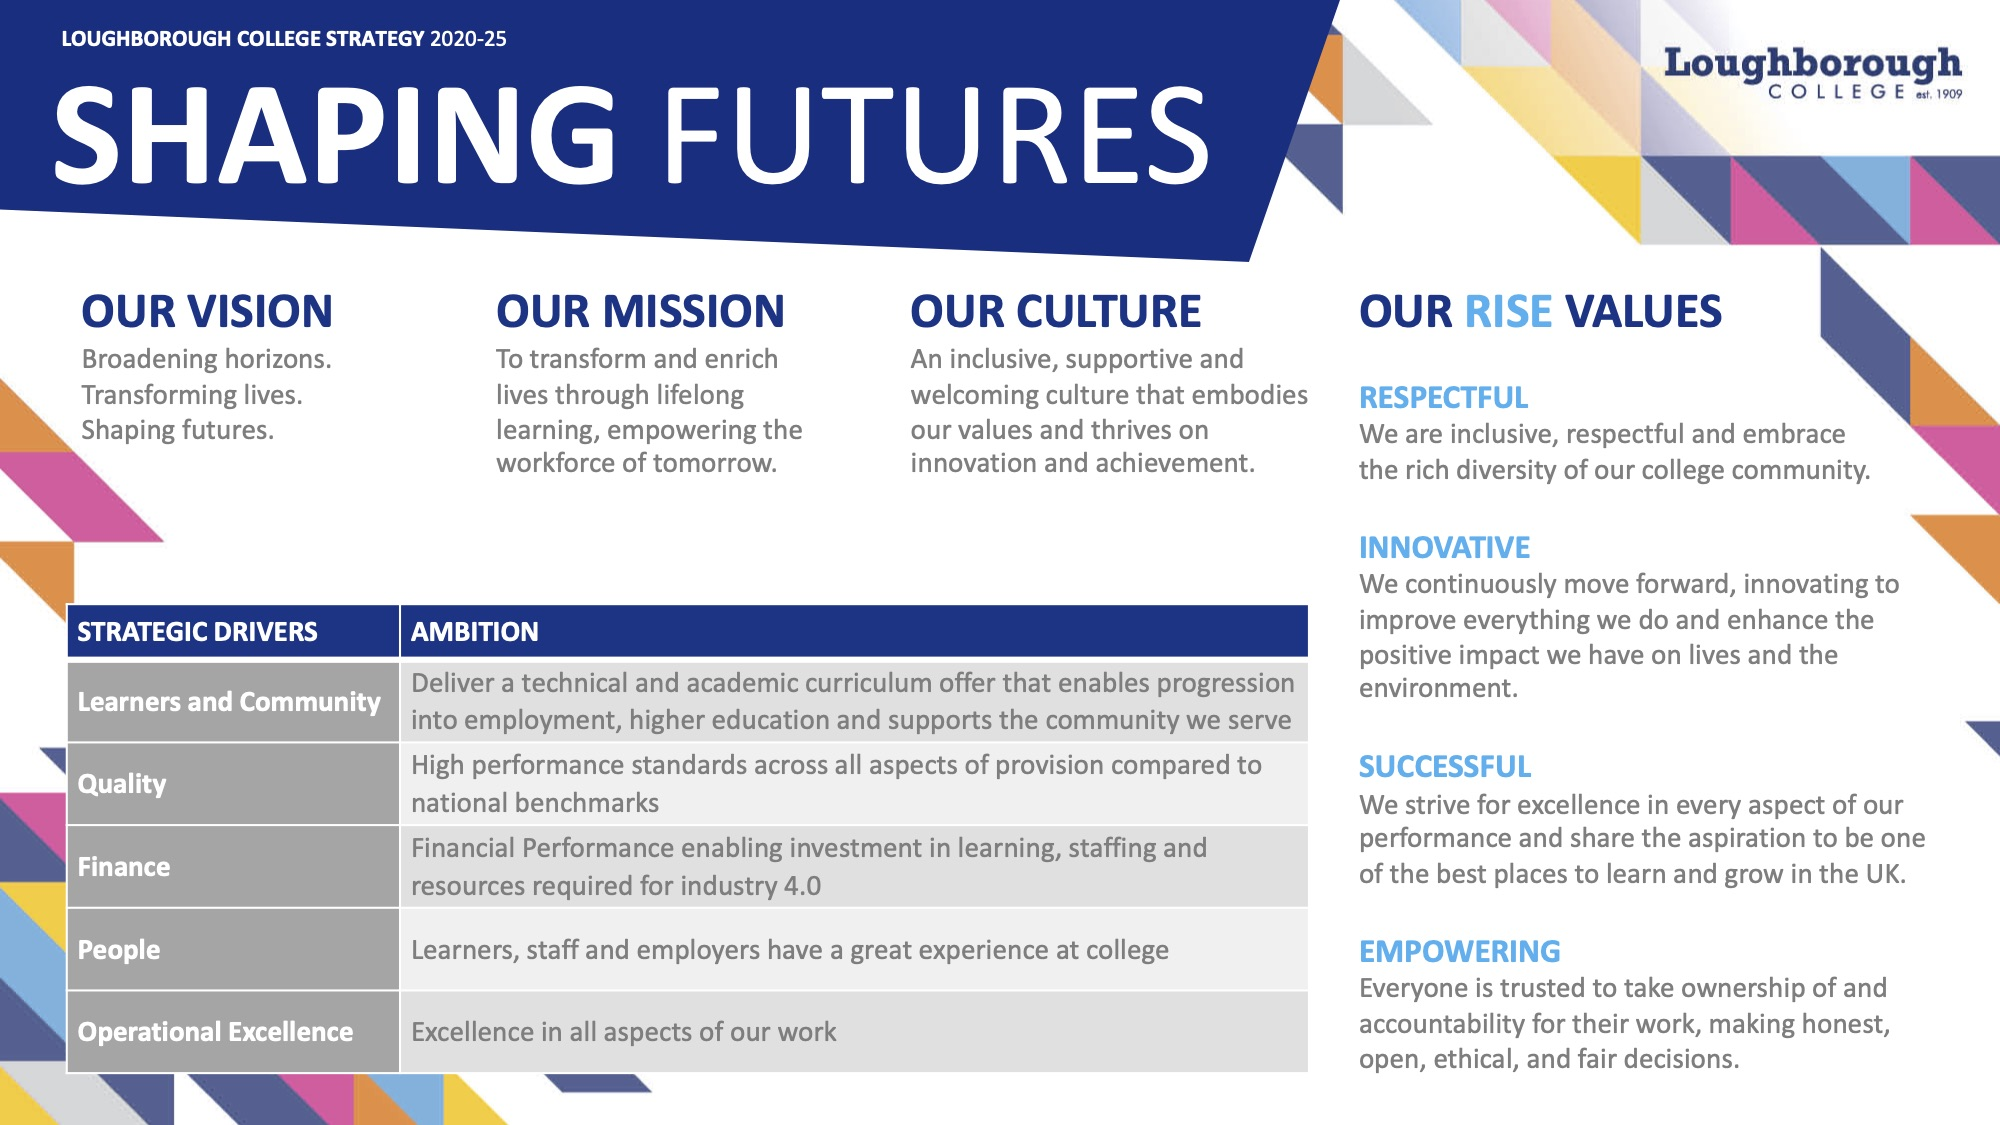 Shaping Futures 2025 Strategy - find out more